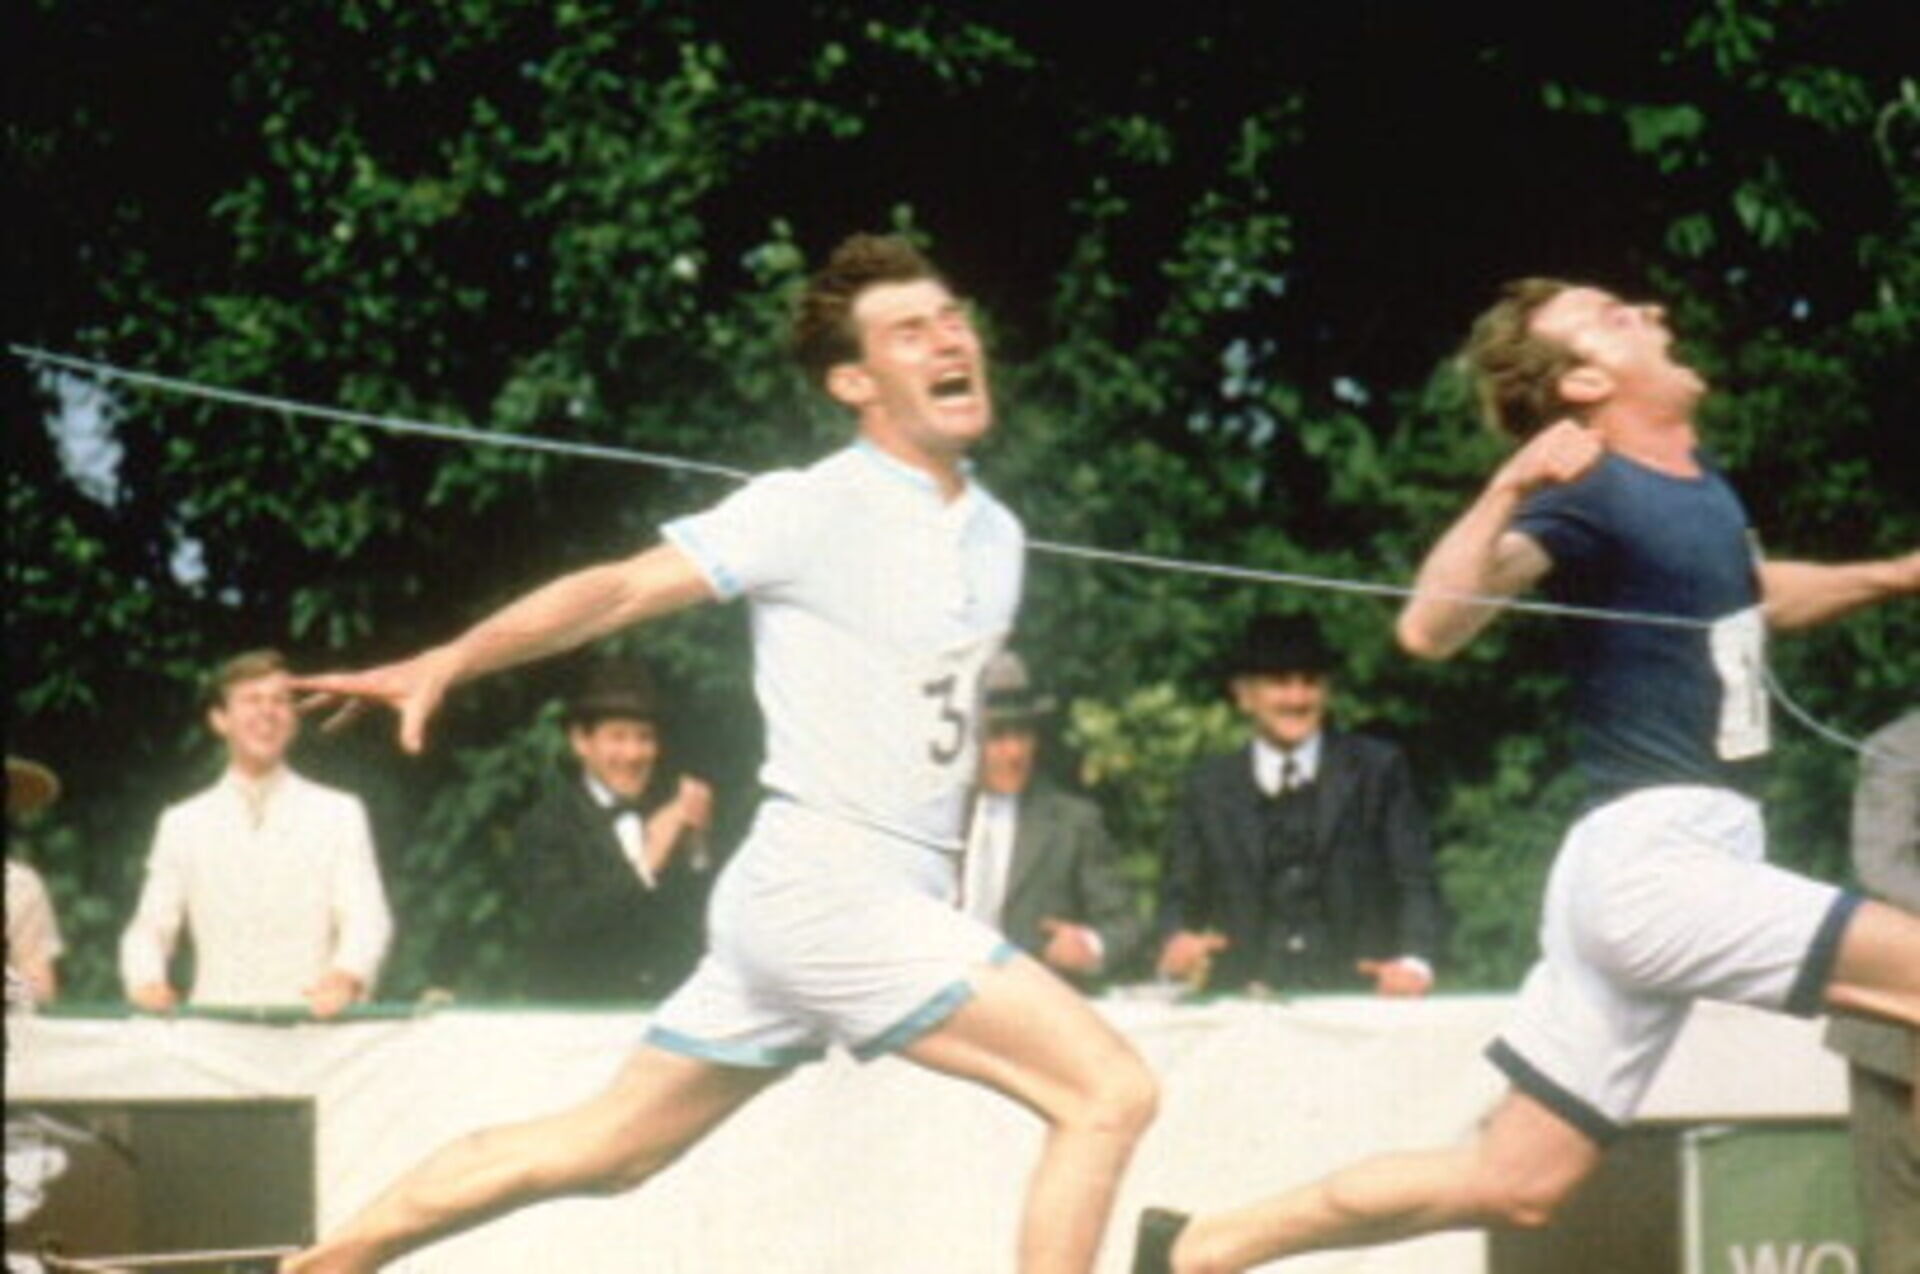 Chariots of Fire - Image 4